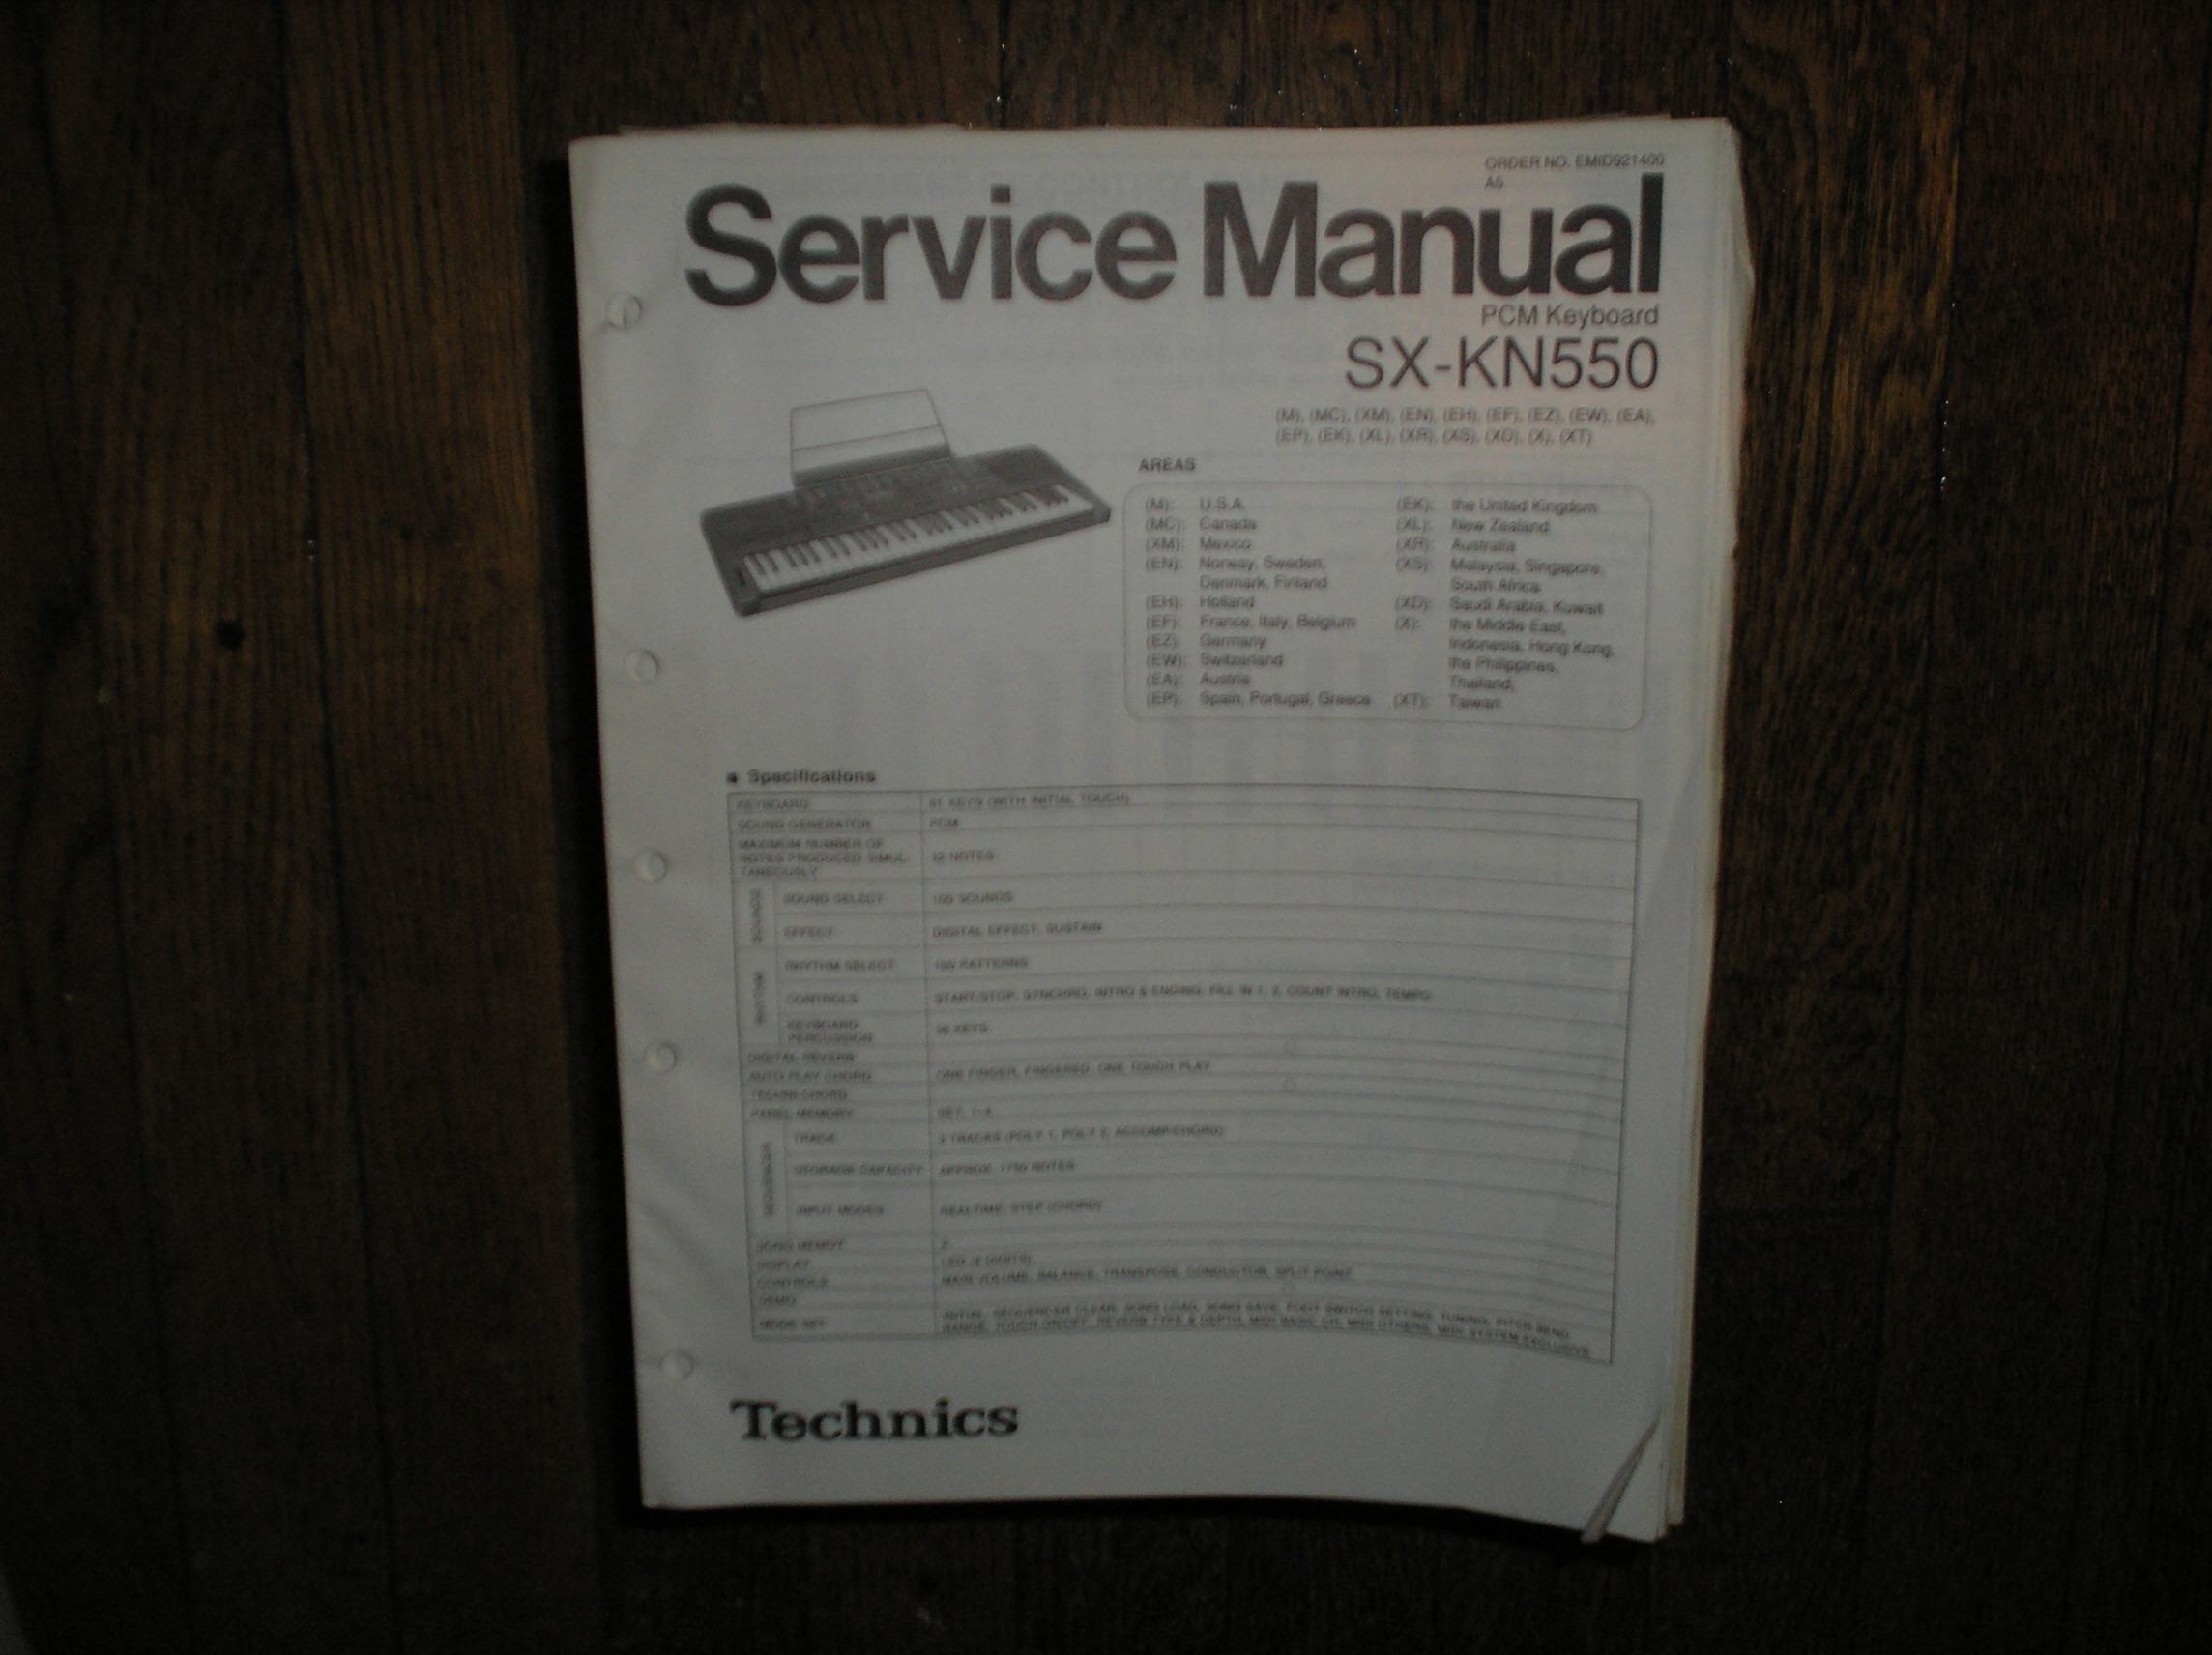 SX-KN570 PCM Keyboard Service Manual